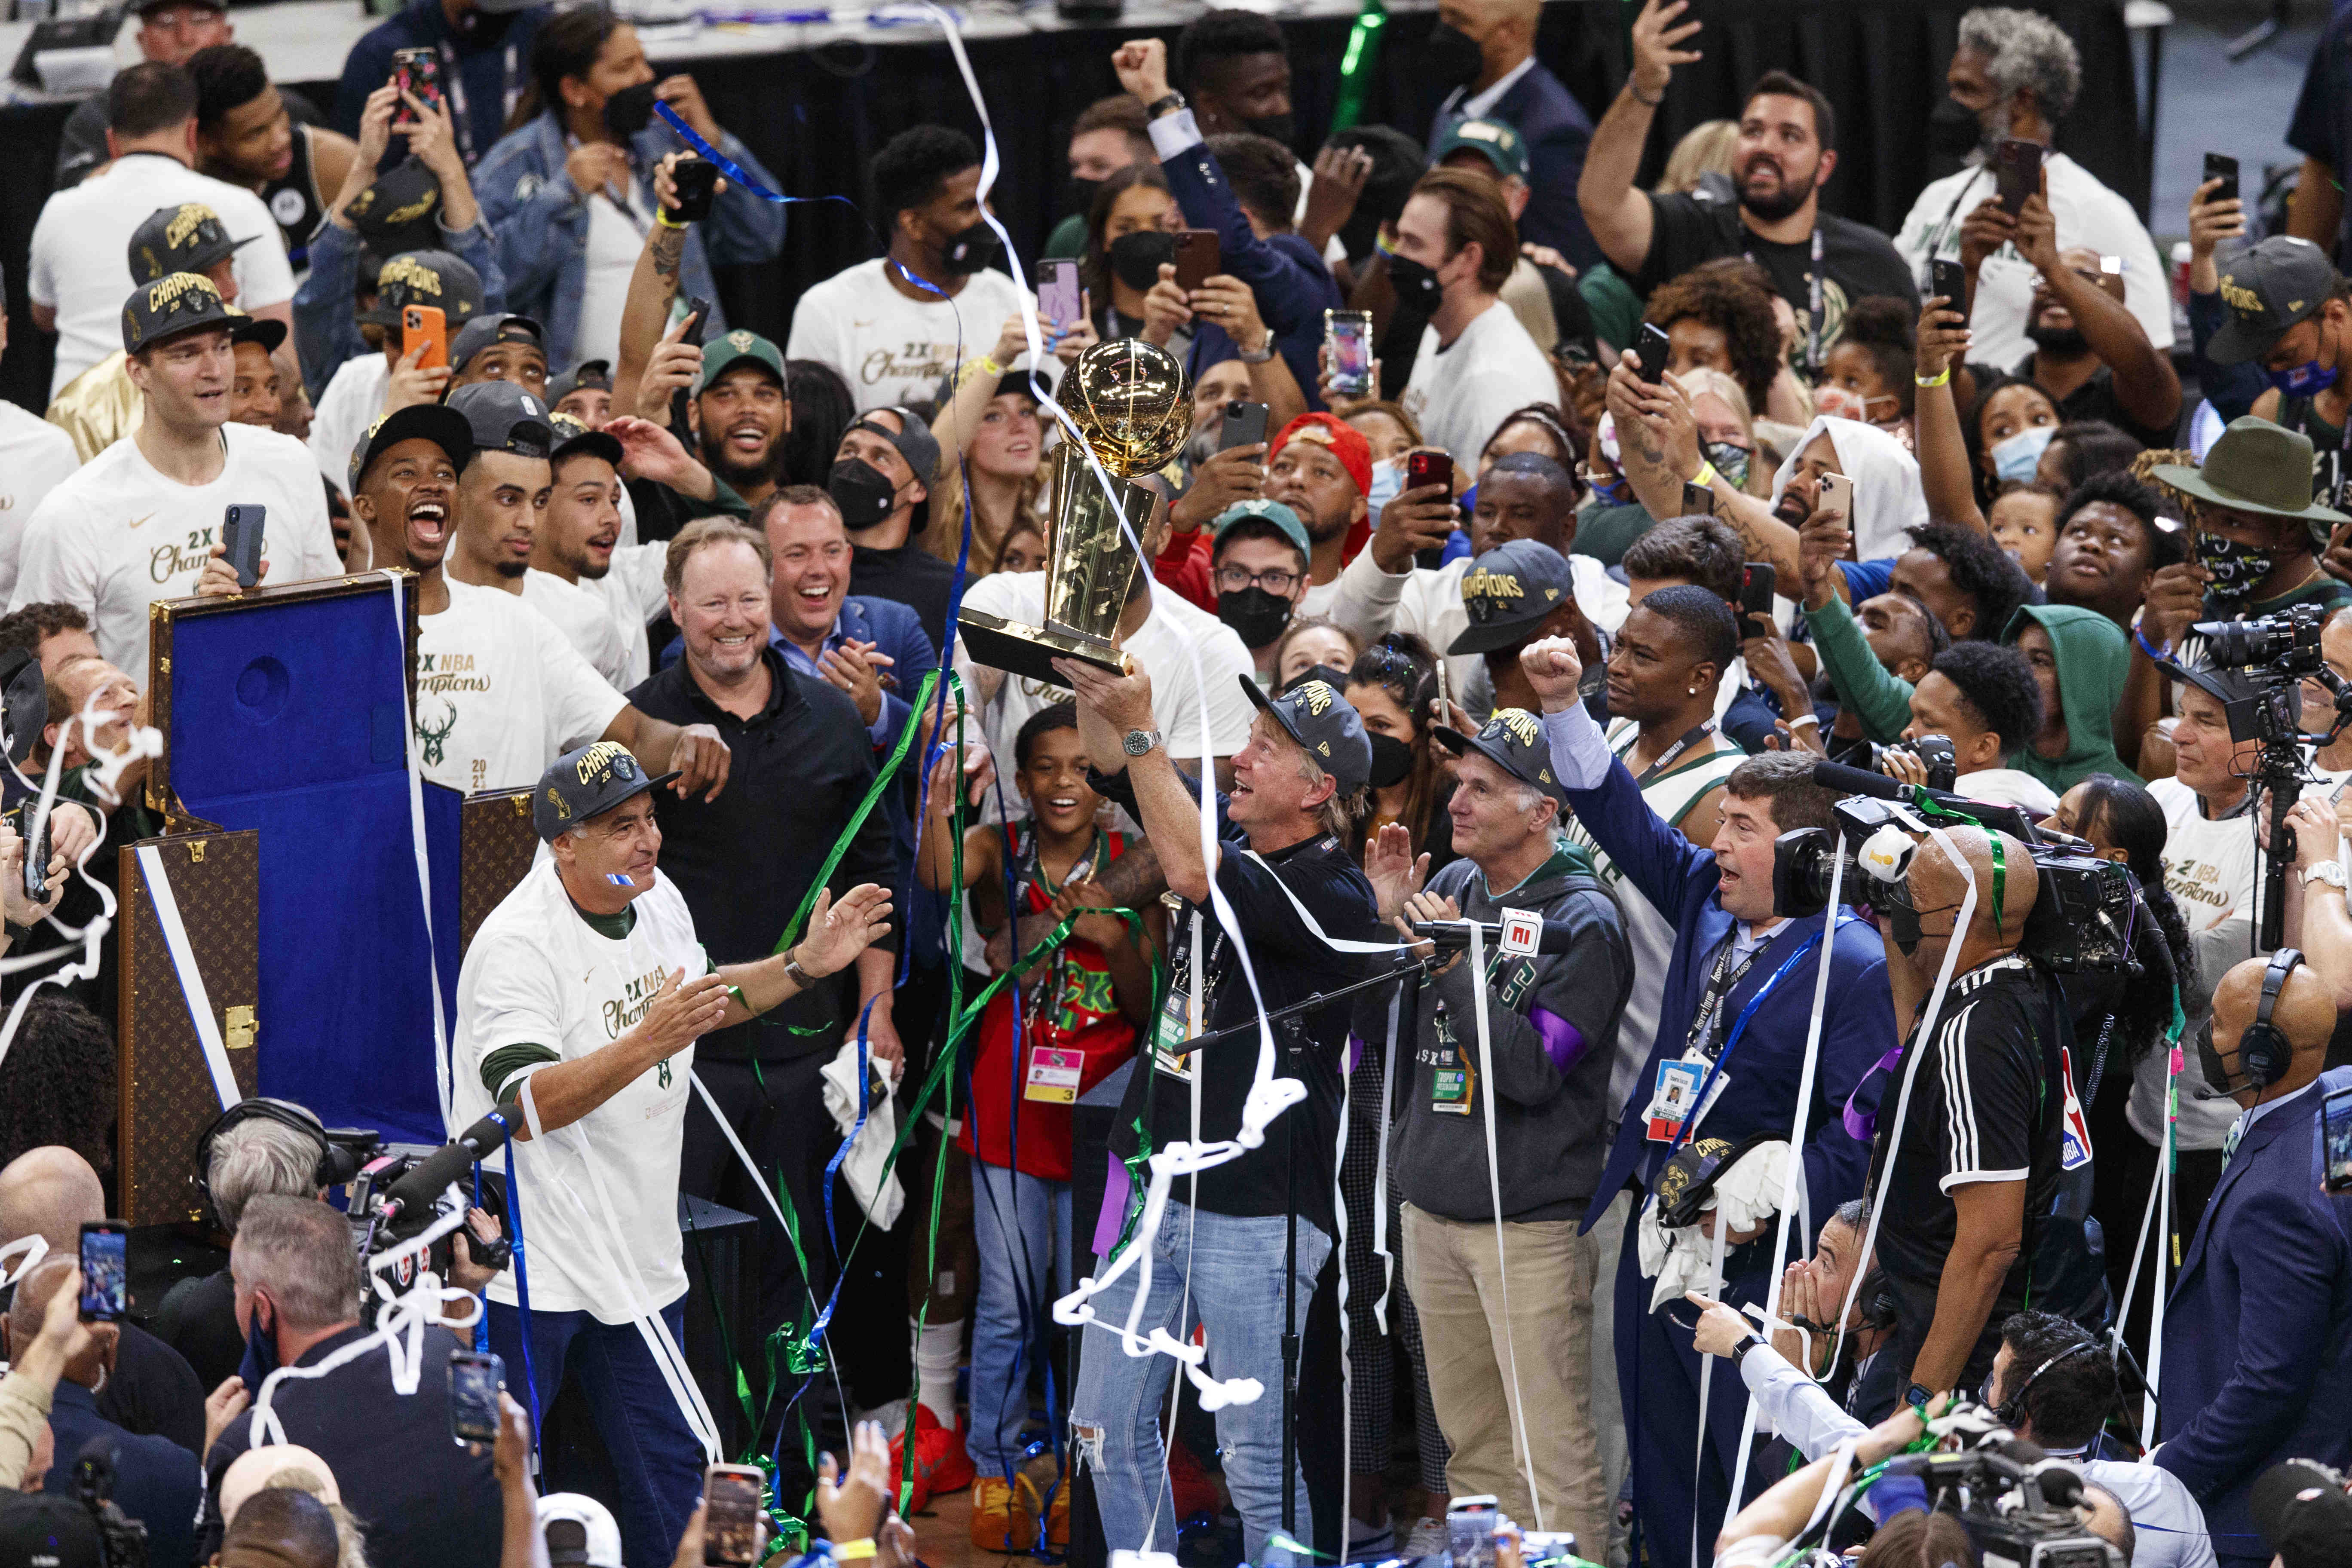 Jul 20, 2021; Milwaukee, Wisconsin, USA; Milwaukee Bucks owner Wes Edens holds up the Larry OÕBrien trophy following game six of the 2021 NBA Finals against the Phoenix Suns at Fiserv Forum. Mandatory Credit: Jeff Hanisch-USA TODAY Sports